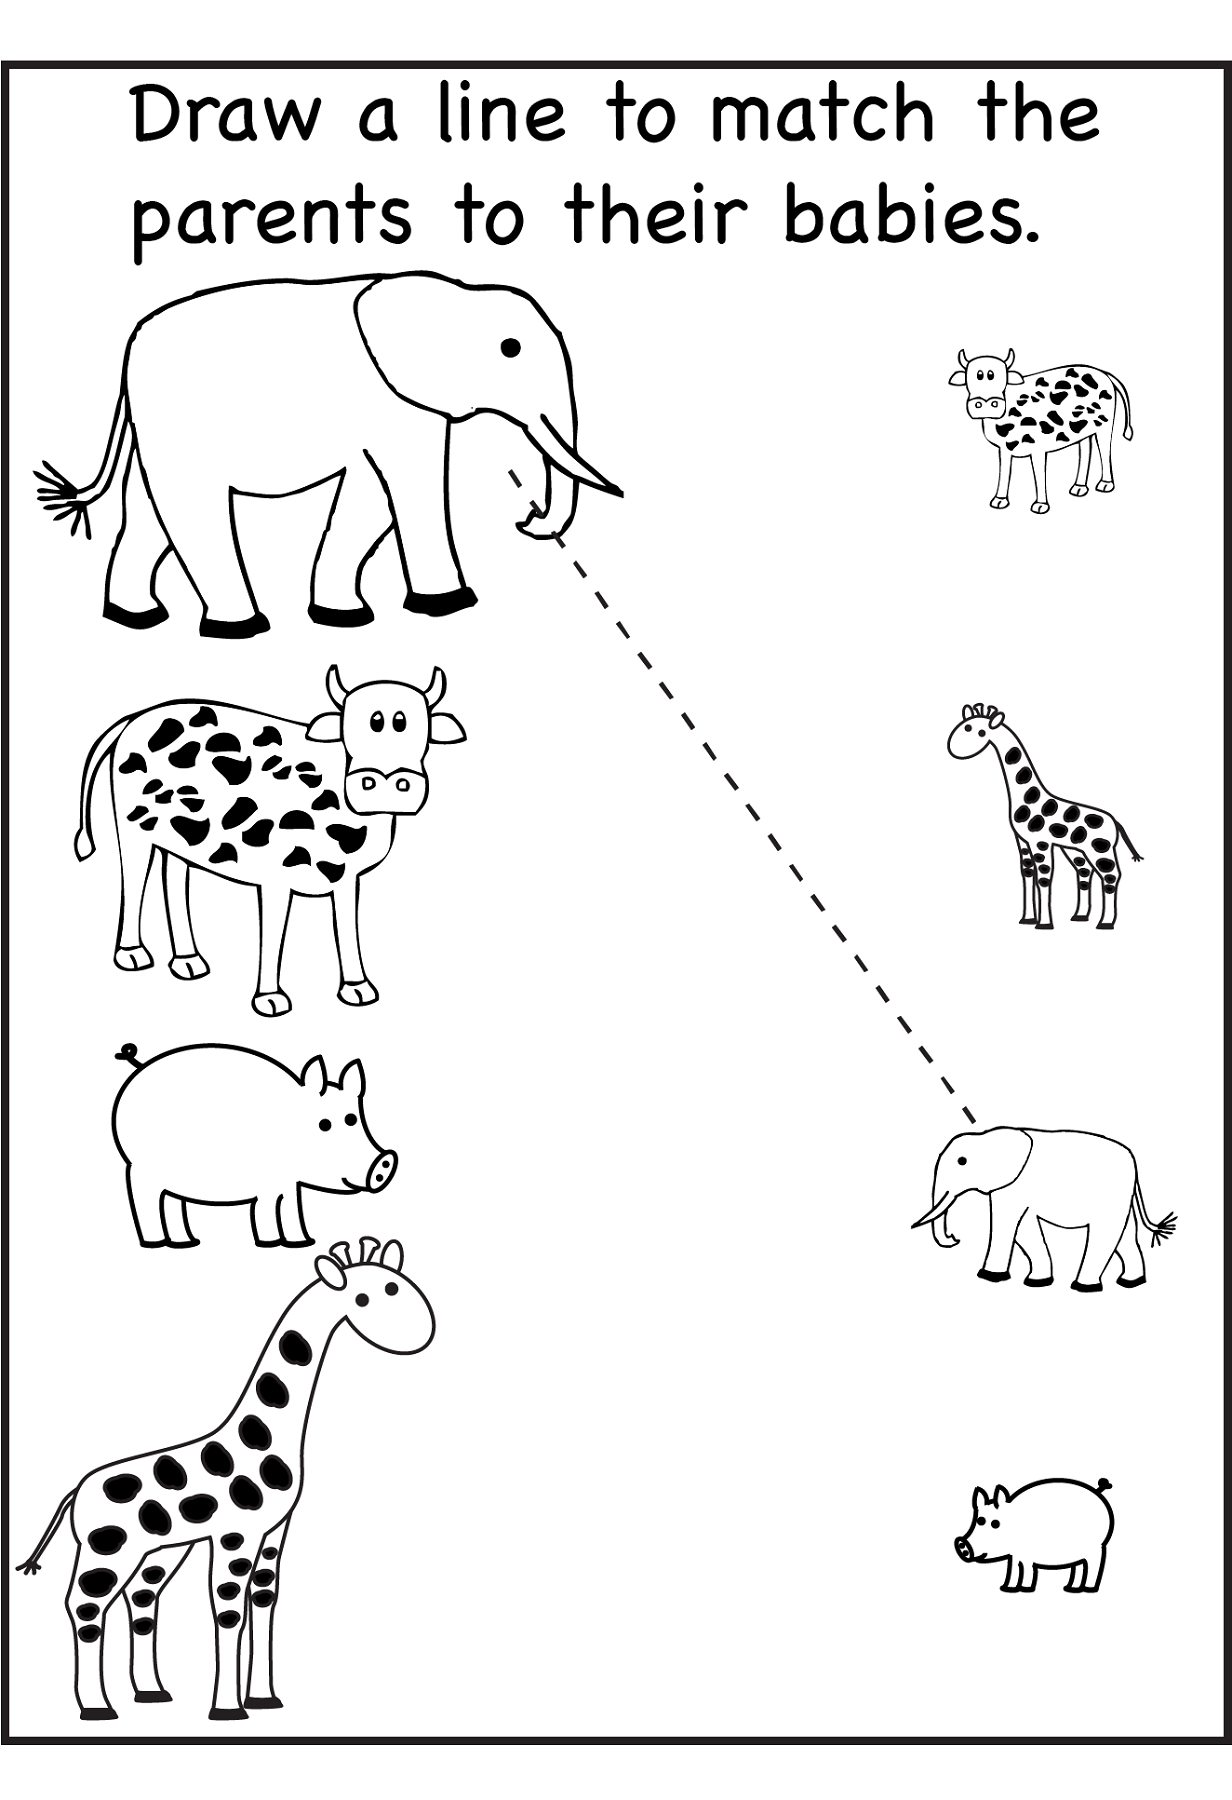 Printable Activity Sheets for Kids | Kids Worksheets Printable ...